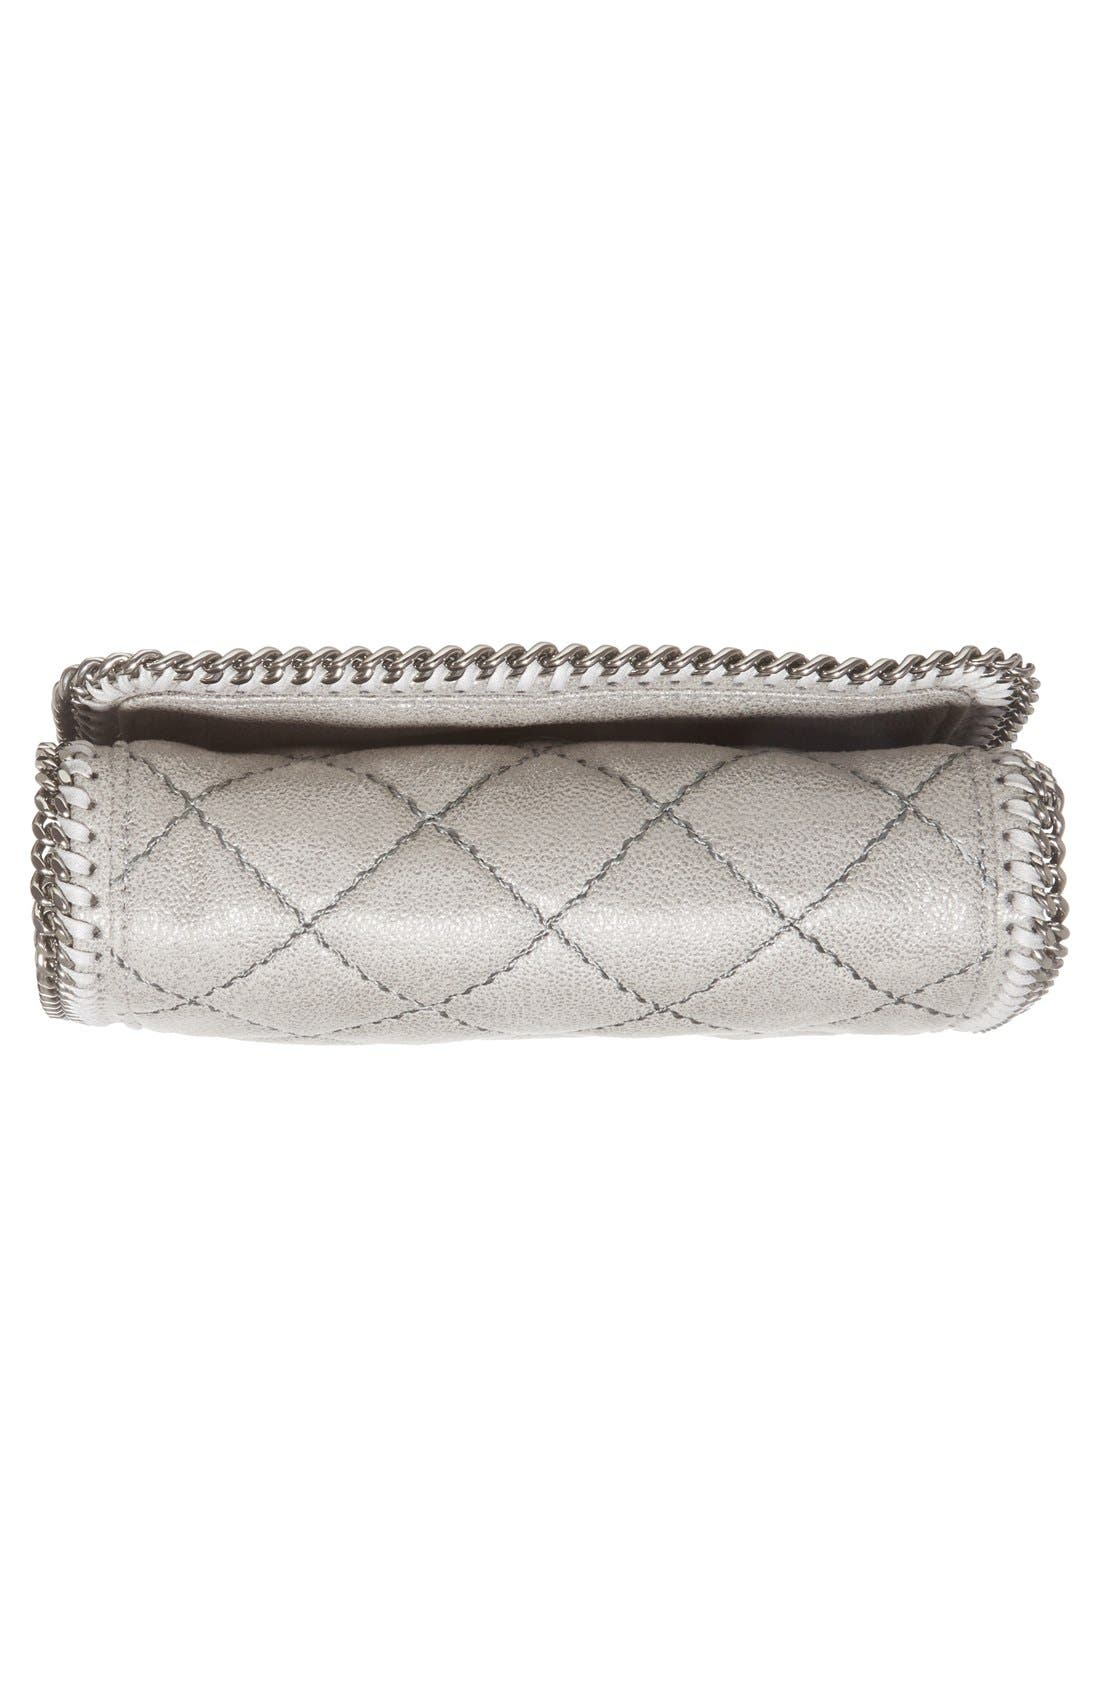 'Falabella' Quilted Faux Leather Crossbody Bag,                             Alternate thumbnail 3, color,                             021